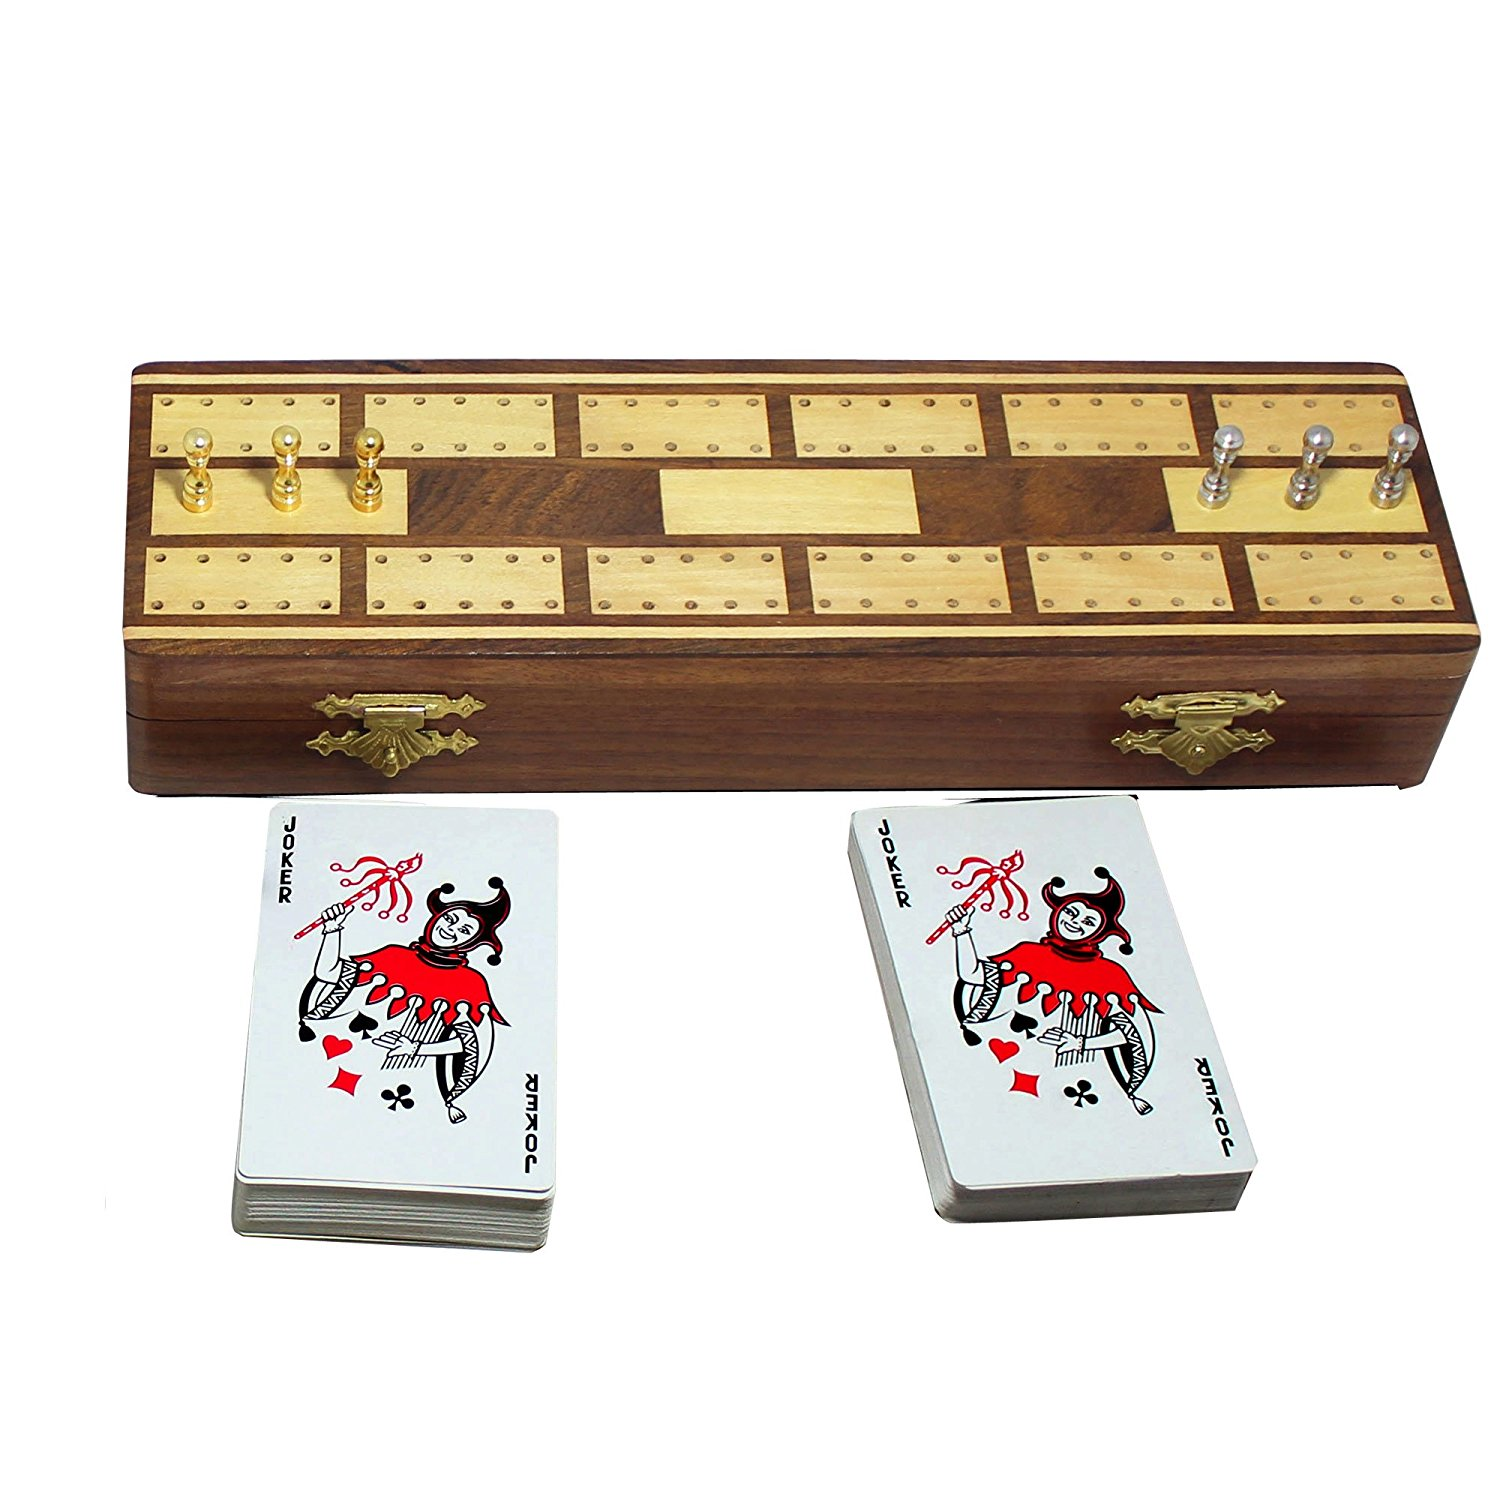 Cheap Board Game Pegs Find Board Game Pegs Deals On Line At Alibaba